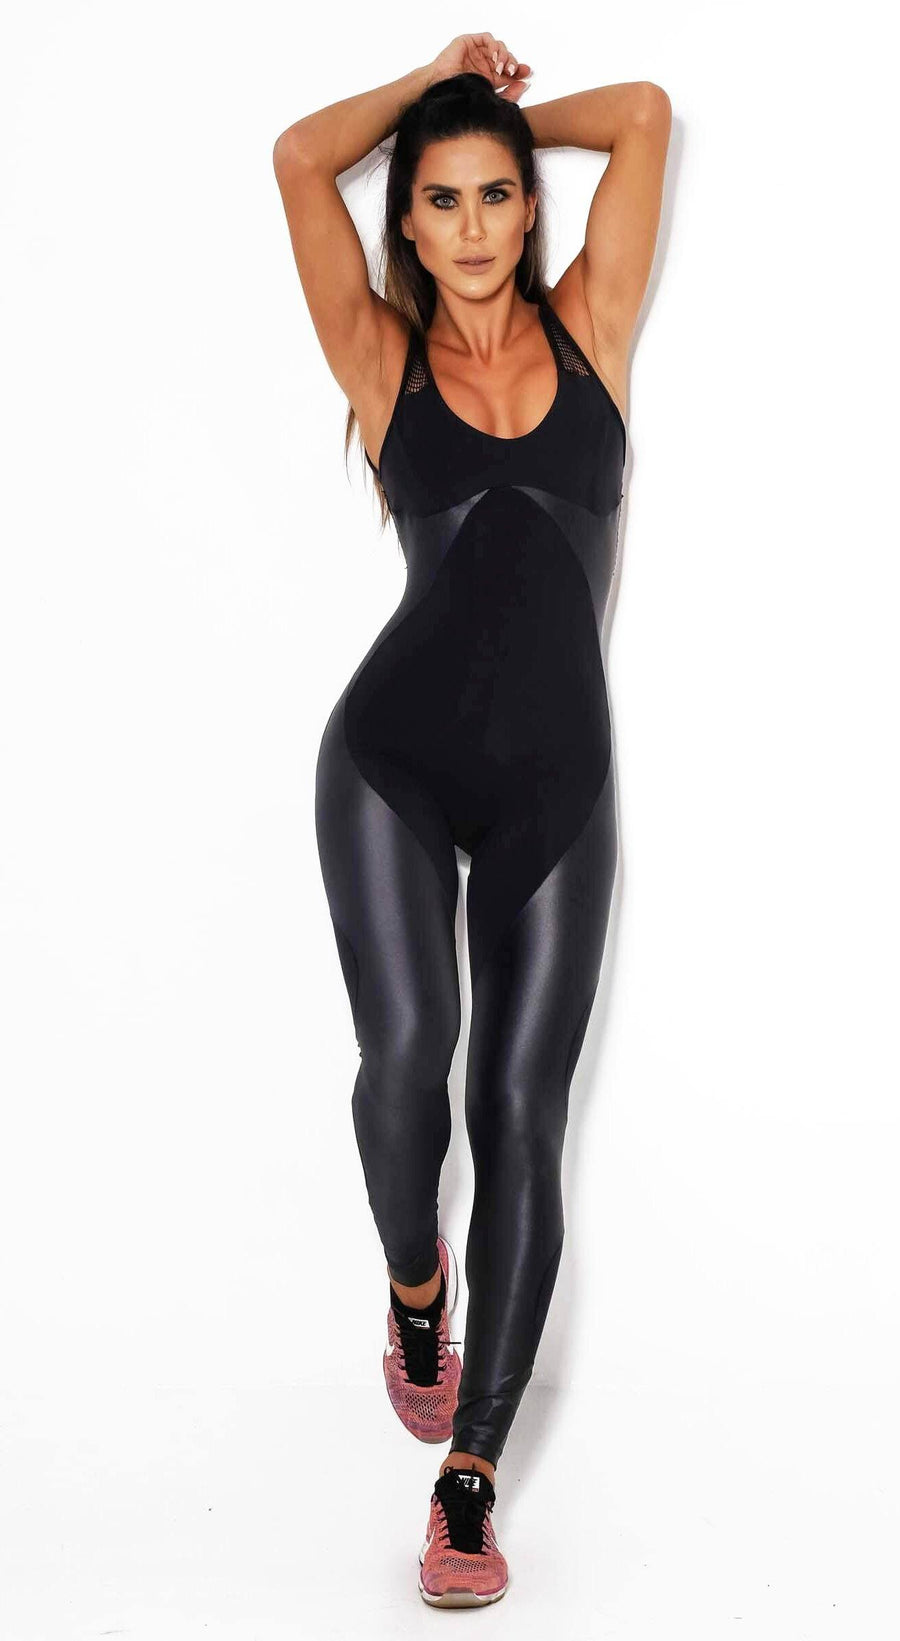 Brazilian Workout Jumpsuit - Midnight Storm Black